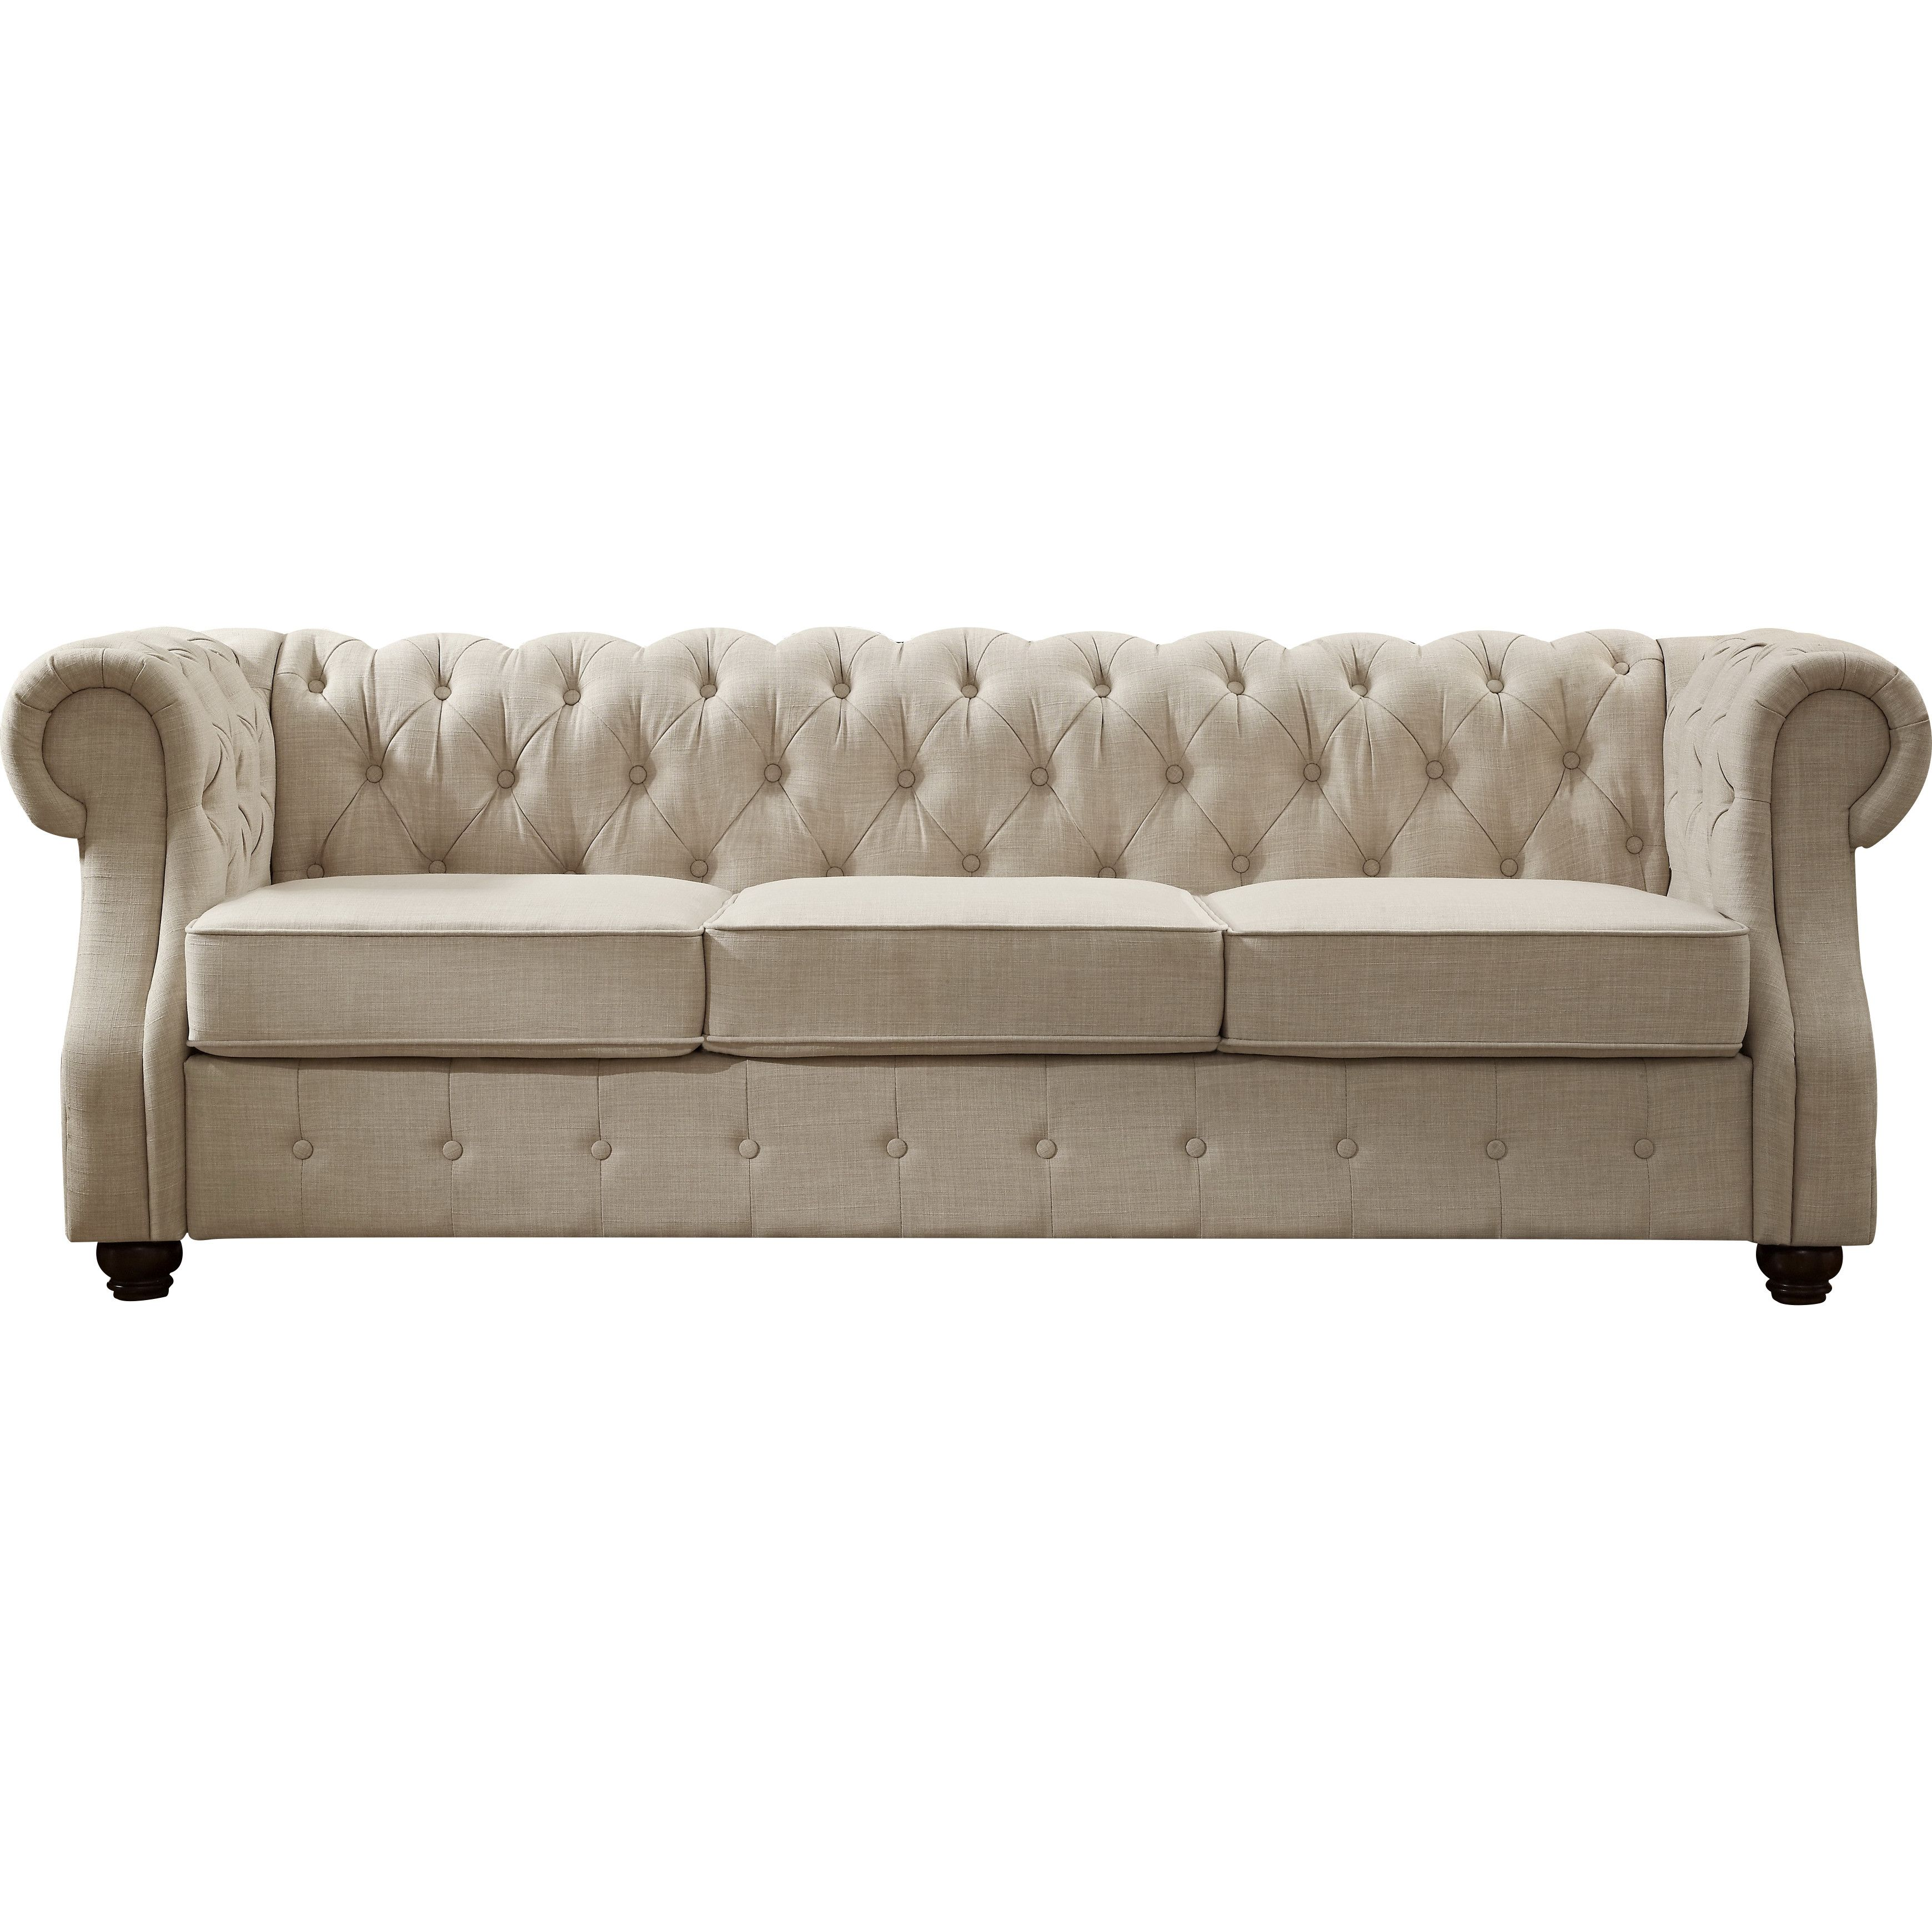 You Ll Love The Olivia Tufted Sofa At Wayfair Great Deals On All